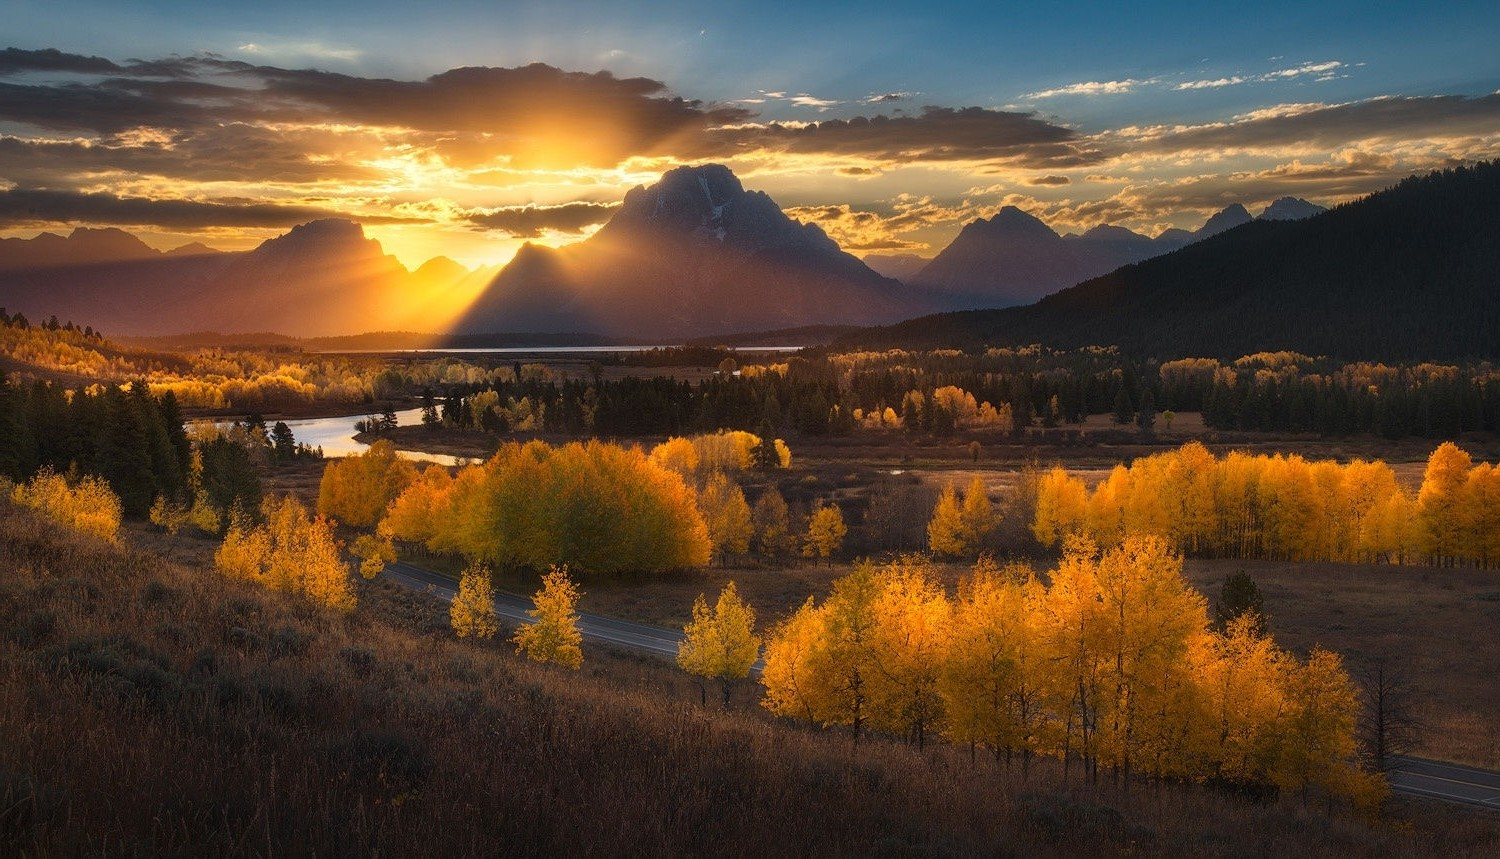 Fall Foliage Wallpaper For Computer Nature Photography Landscape Sunset Mountains Sun